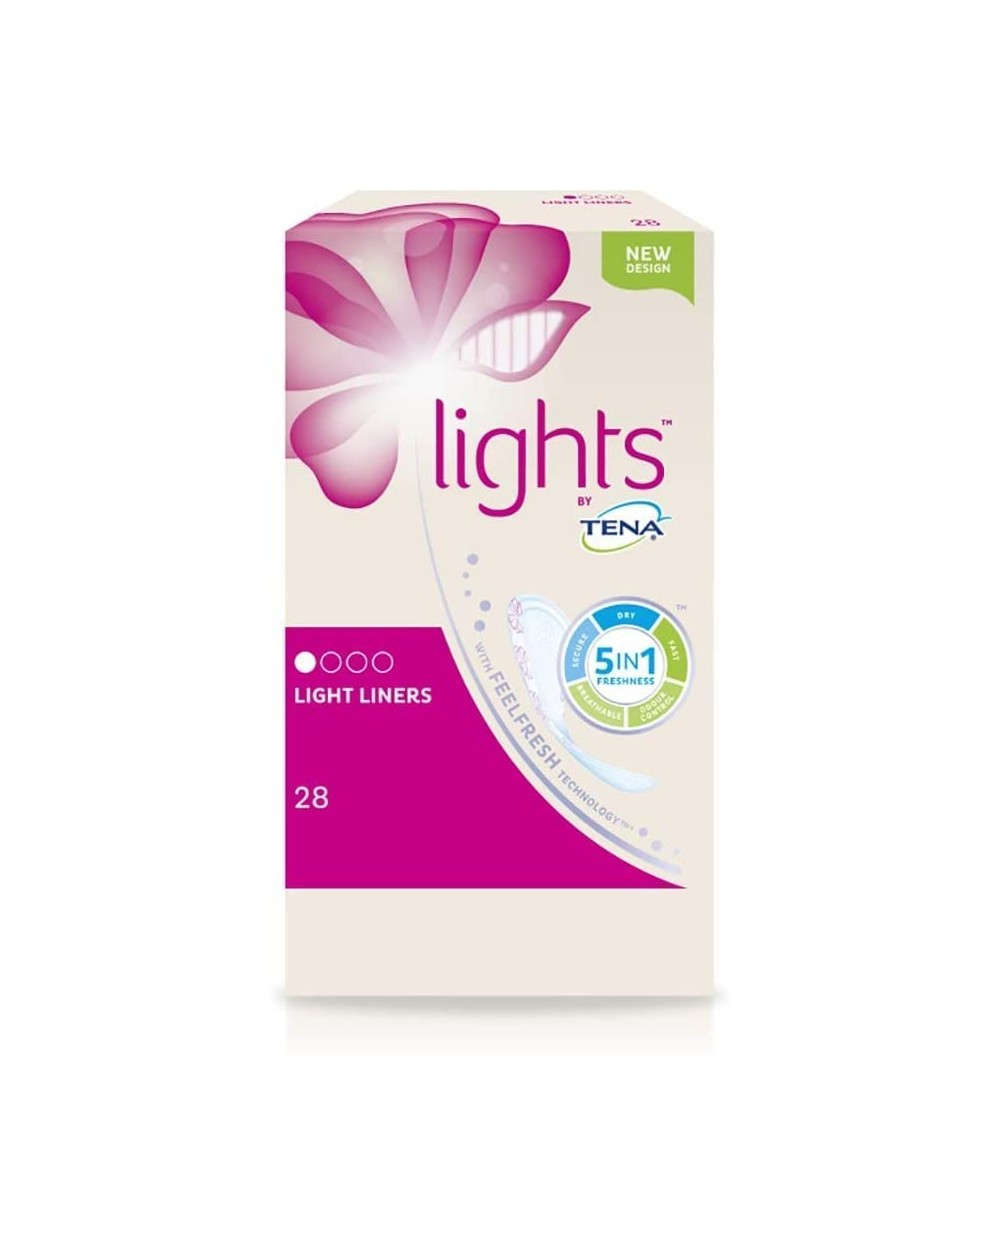 Lights by TENA - Liners - 24 protections